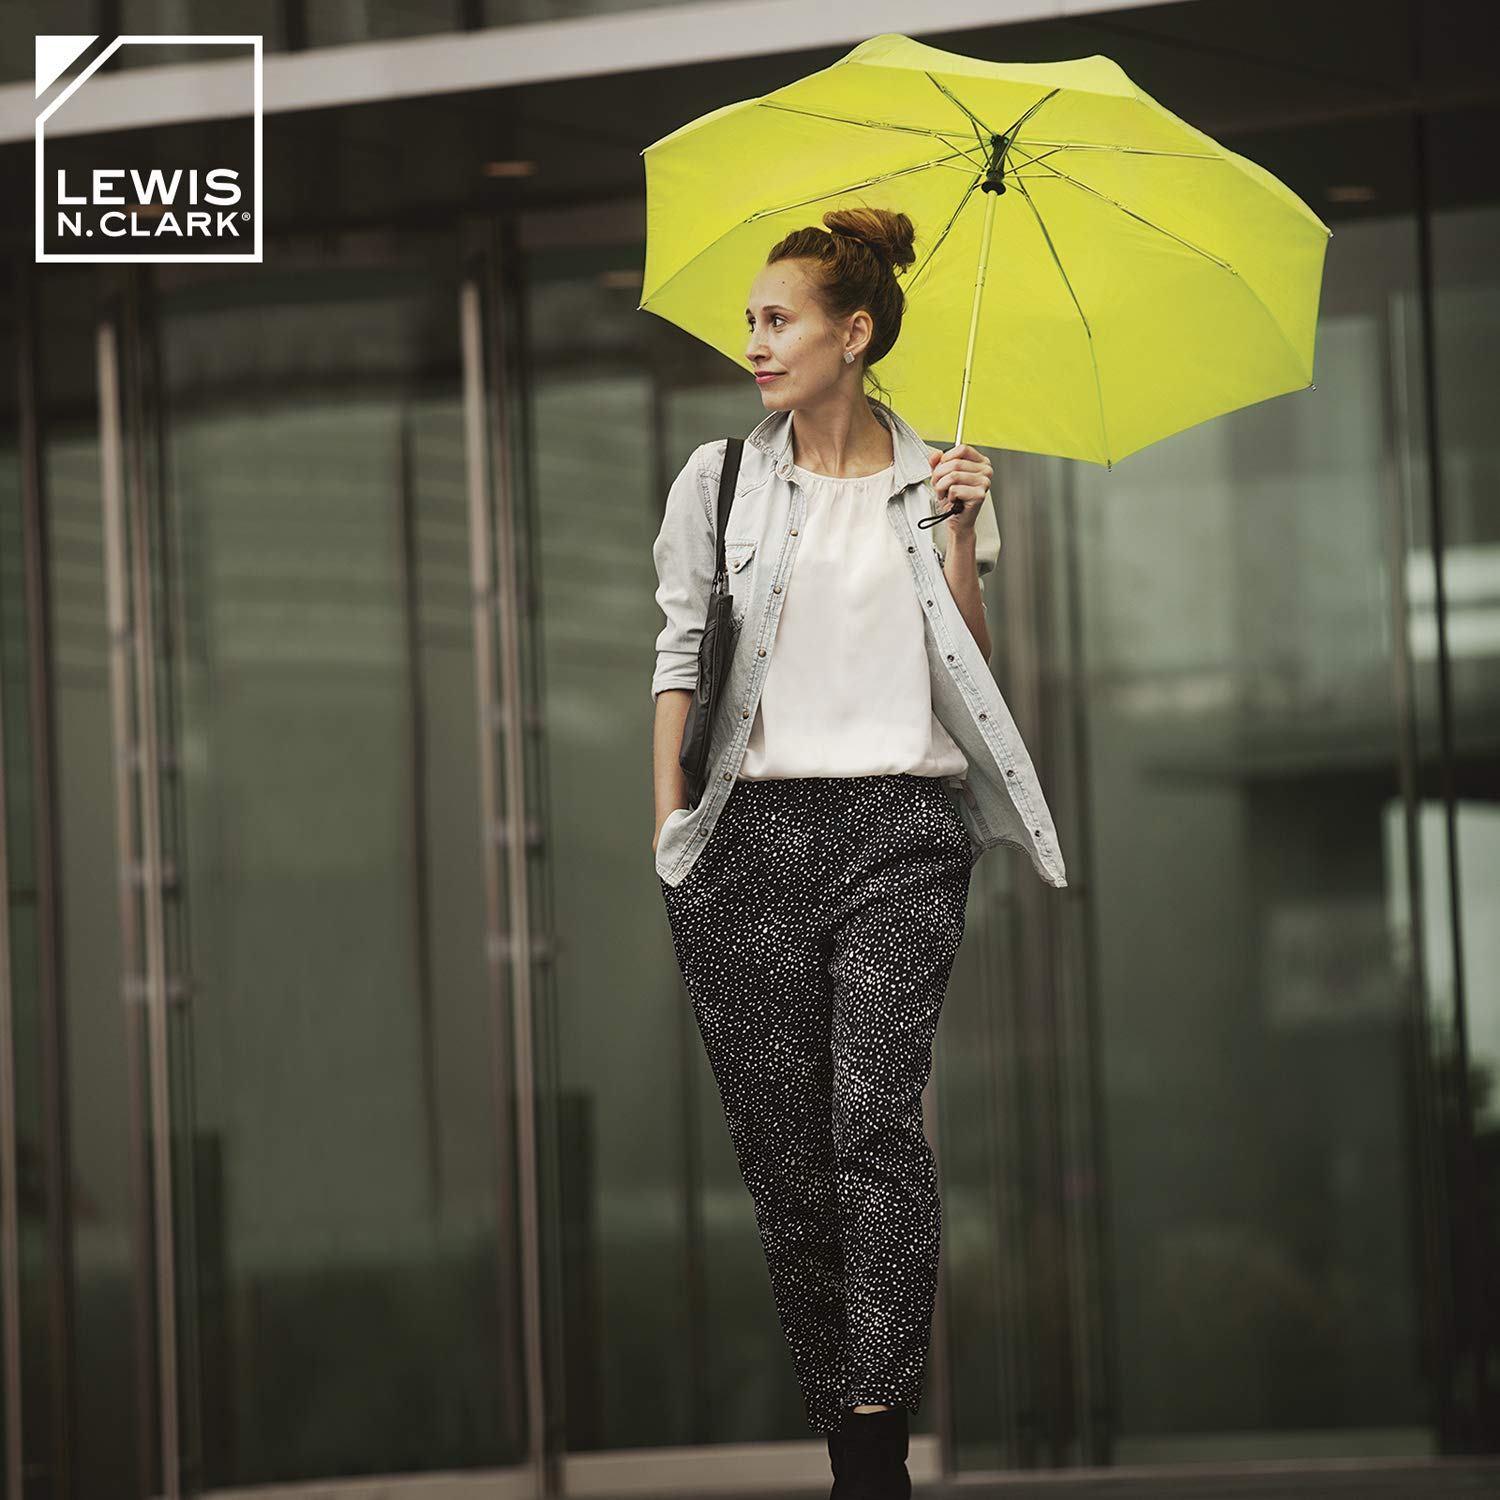 Lewis N. Clark Travel Umbrella: Windproof & Water Repellent with Mildew Resistant Fabric, Automatic Open Close & 1 Year Warranty. - Black by Lewis N. Clark (Image #4)